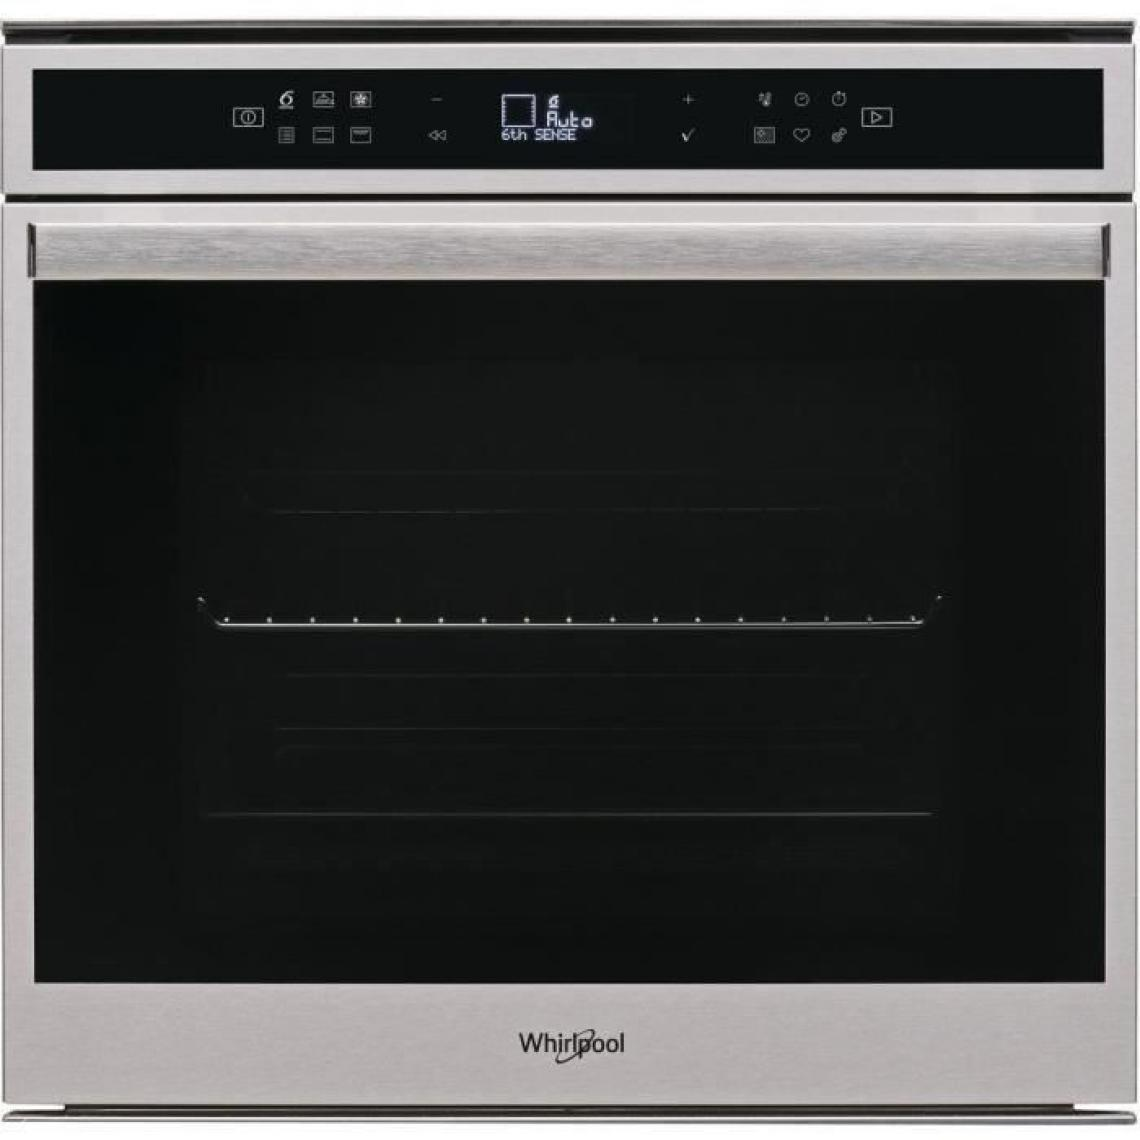 whirlpool Four encastrable Multifonction 73L WHIRLPOOL 3650W 60cm A+, WHI8003437835193